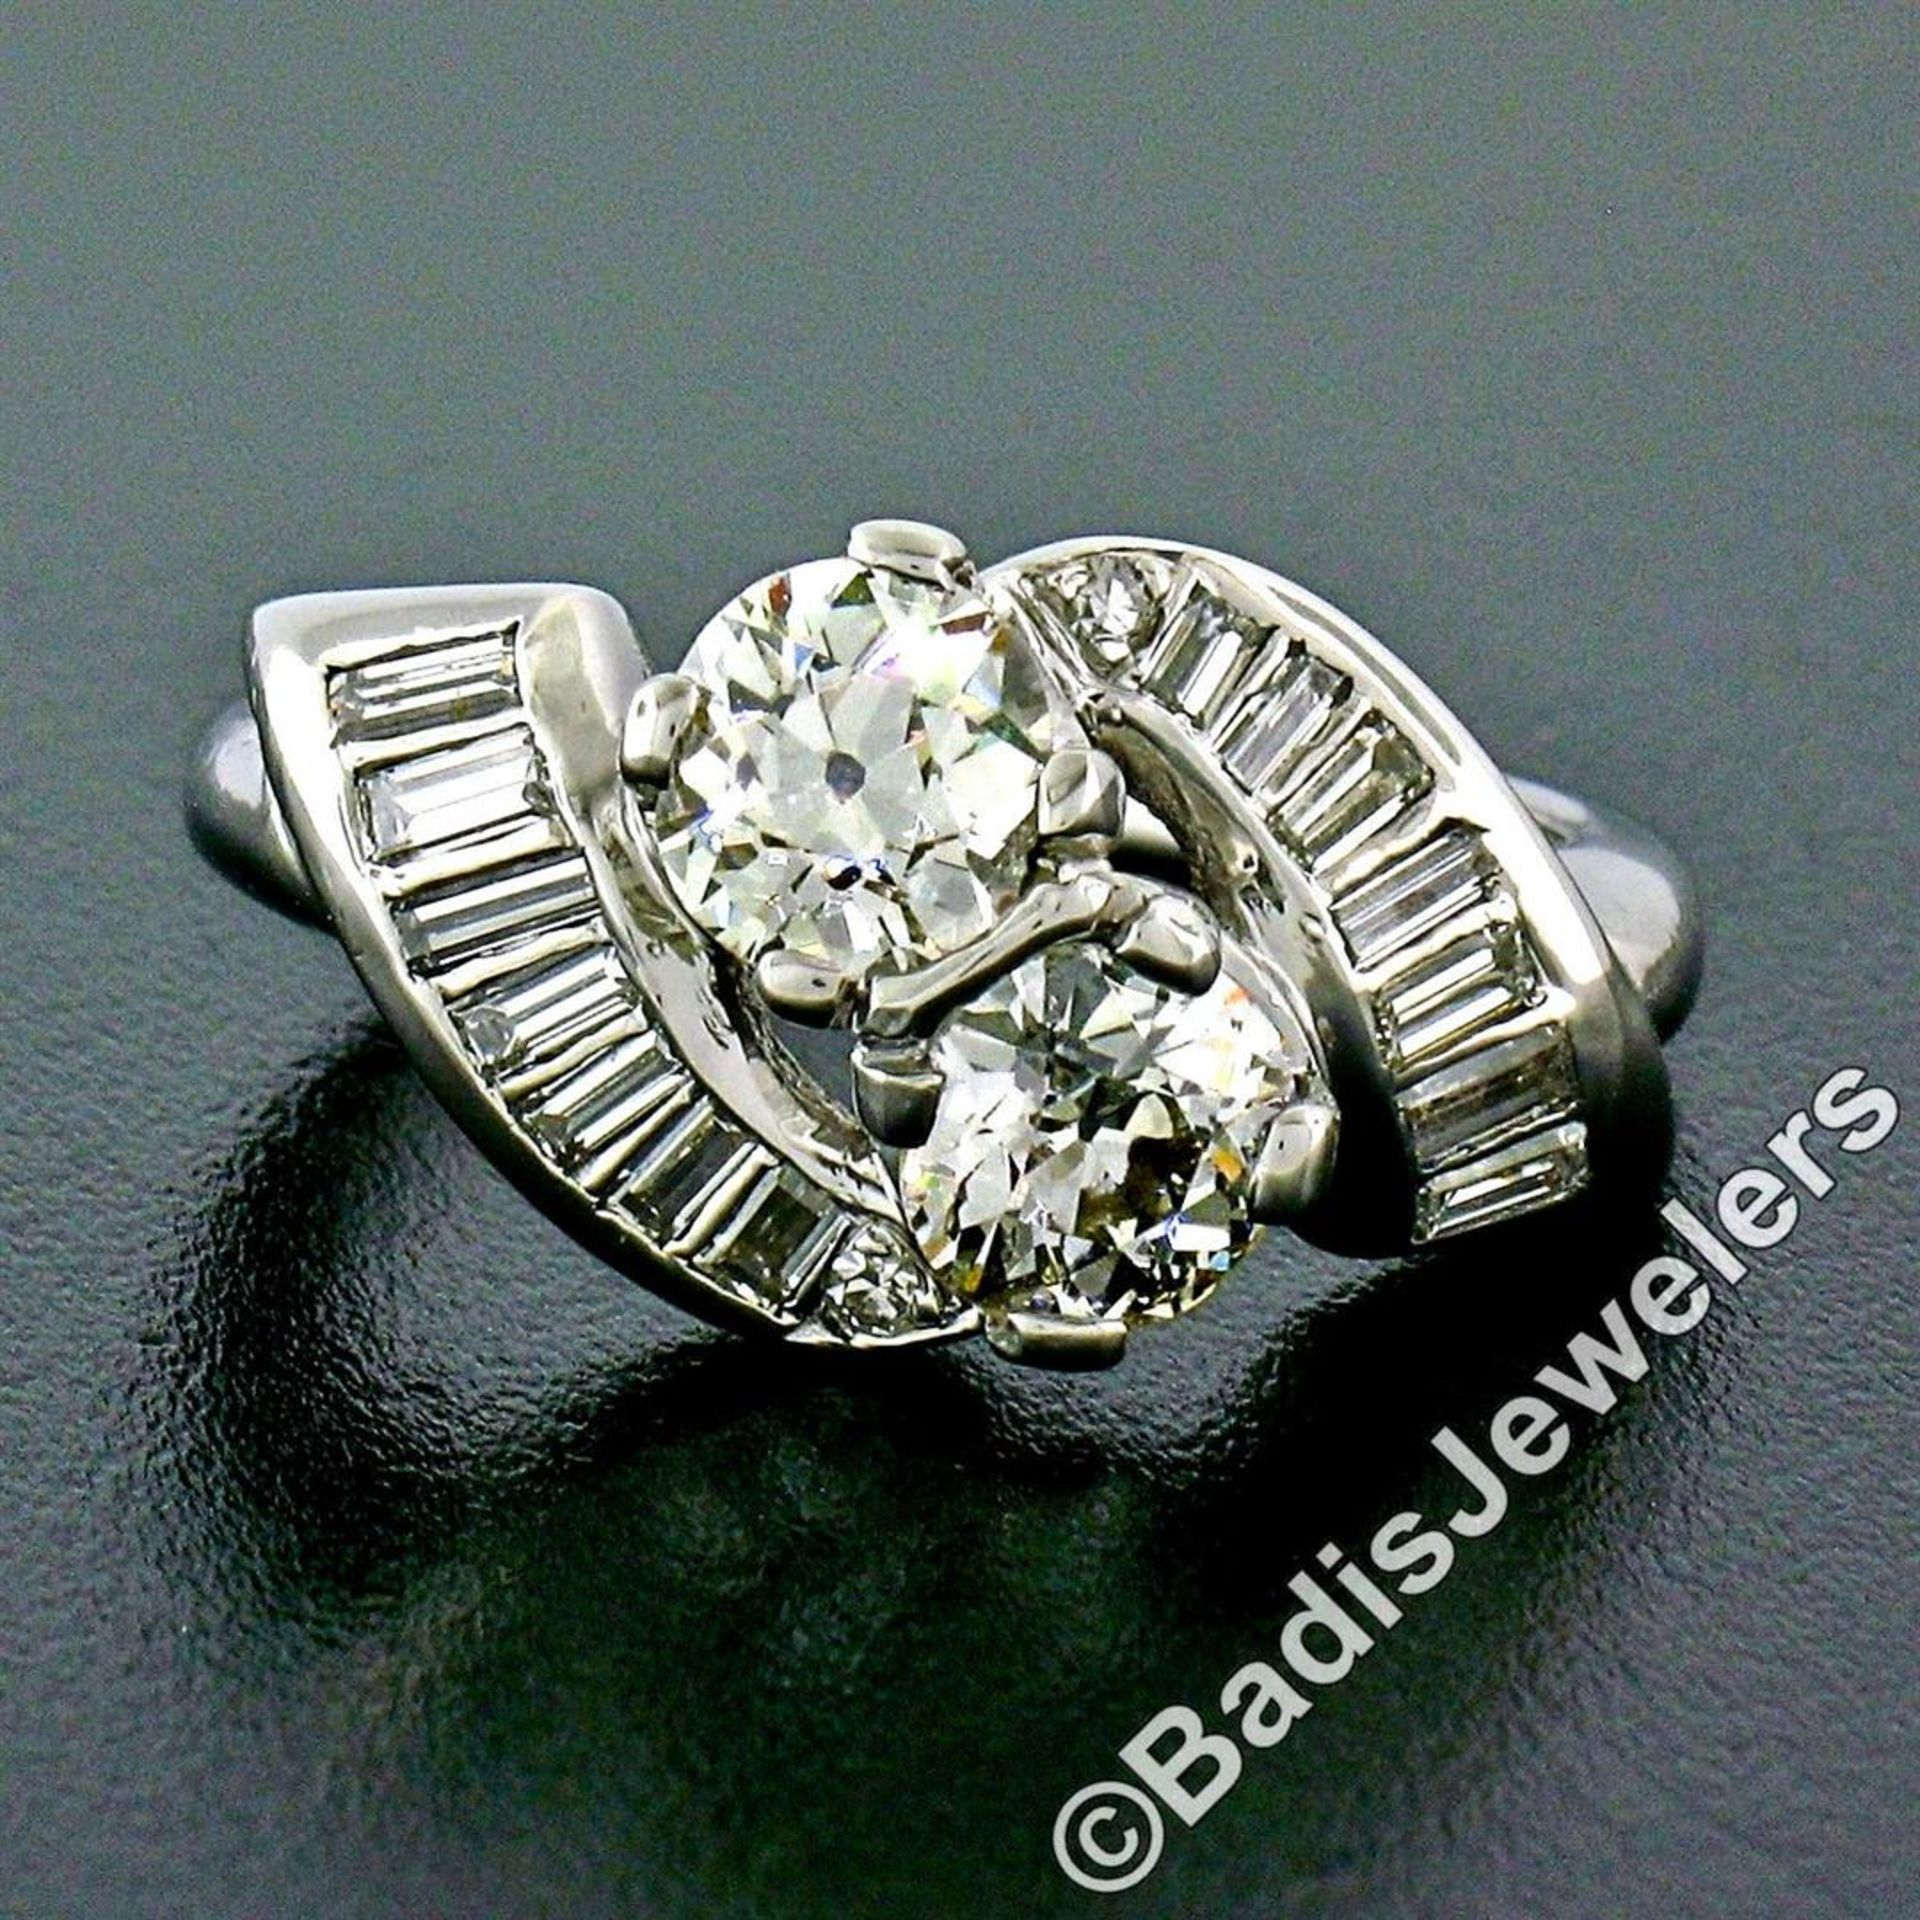 Art Deco Platinum 1.48 ctw Old European and Baguette Cut Diamond Bypass Ring - Image 4 of 9